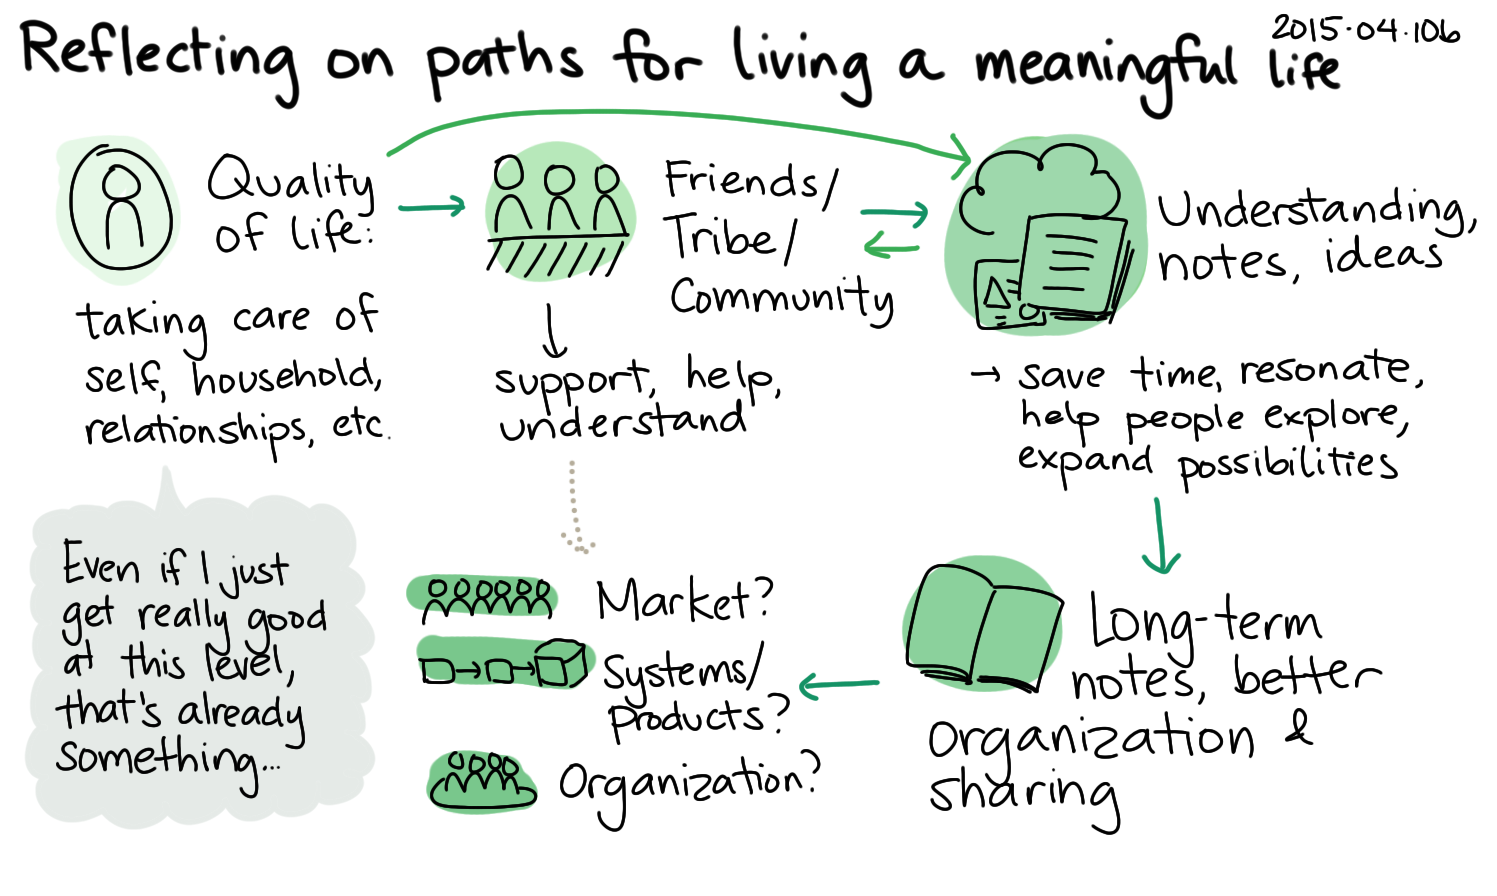 2015-04-10b Reflecting on paths for living a meaningful life -- index card #experiment #evil-plans.png